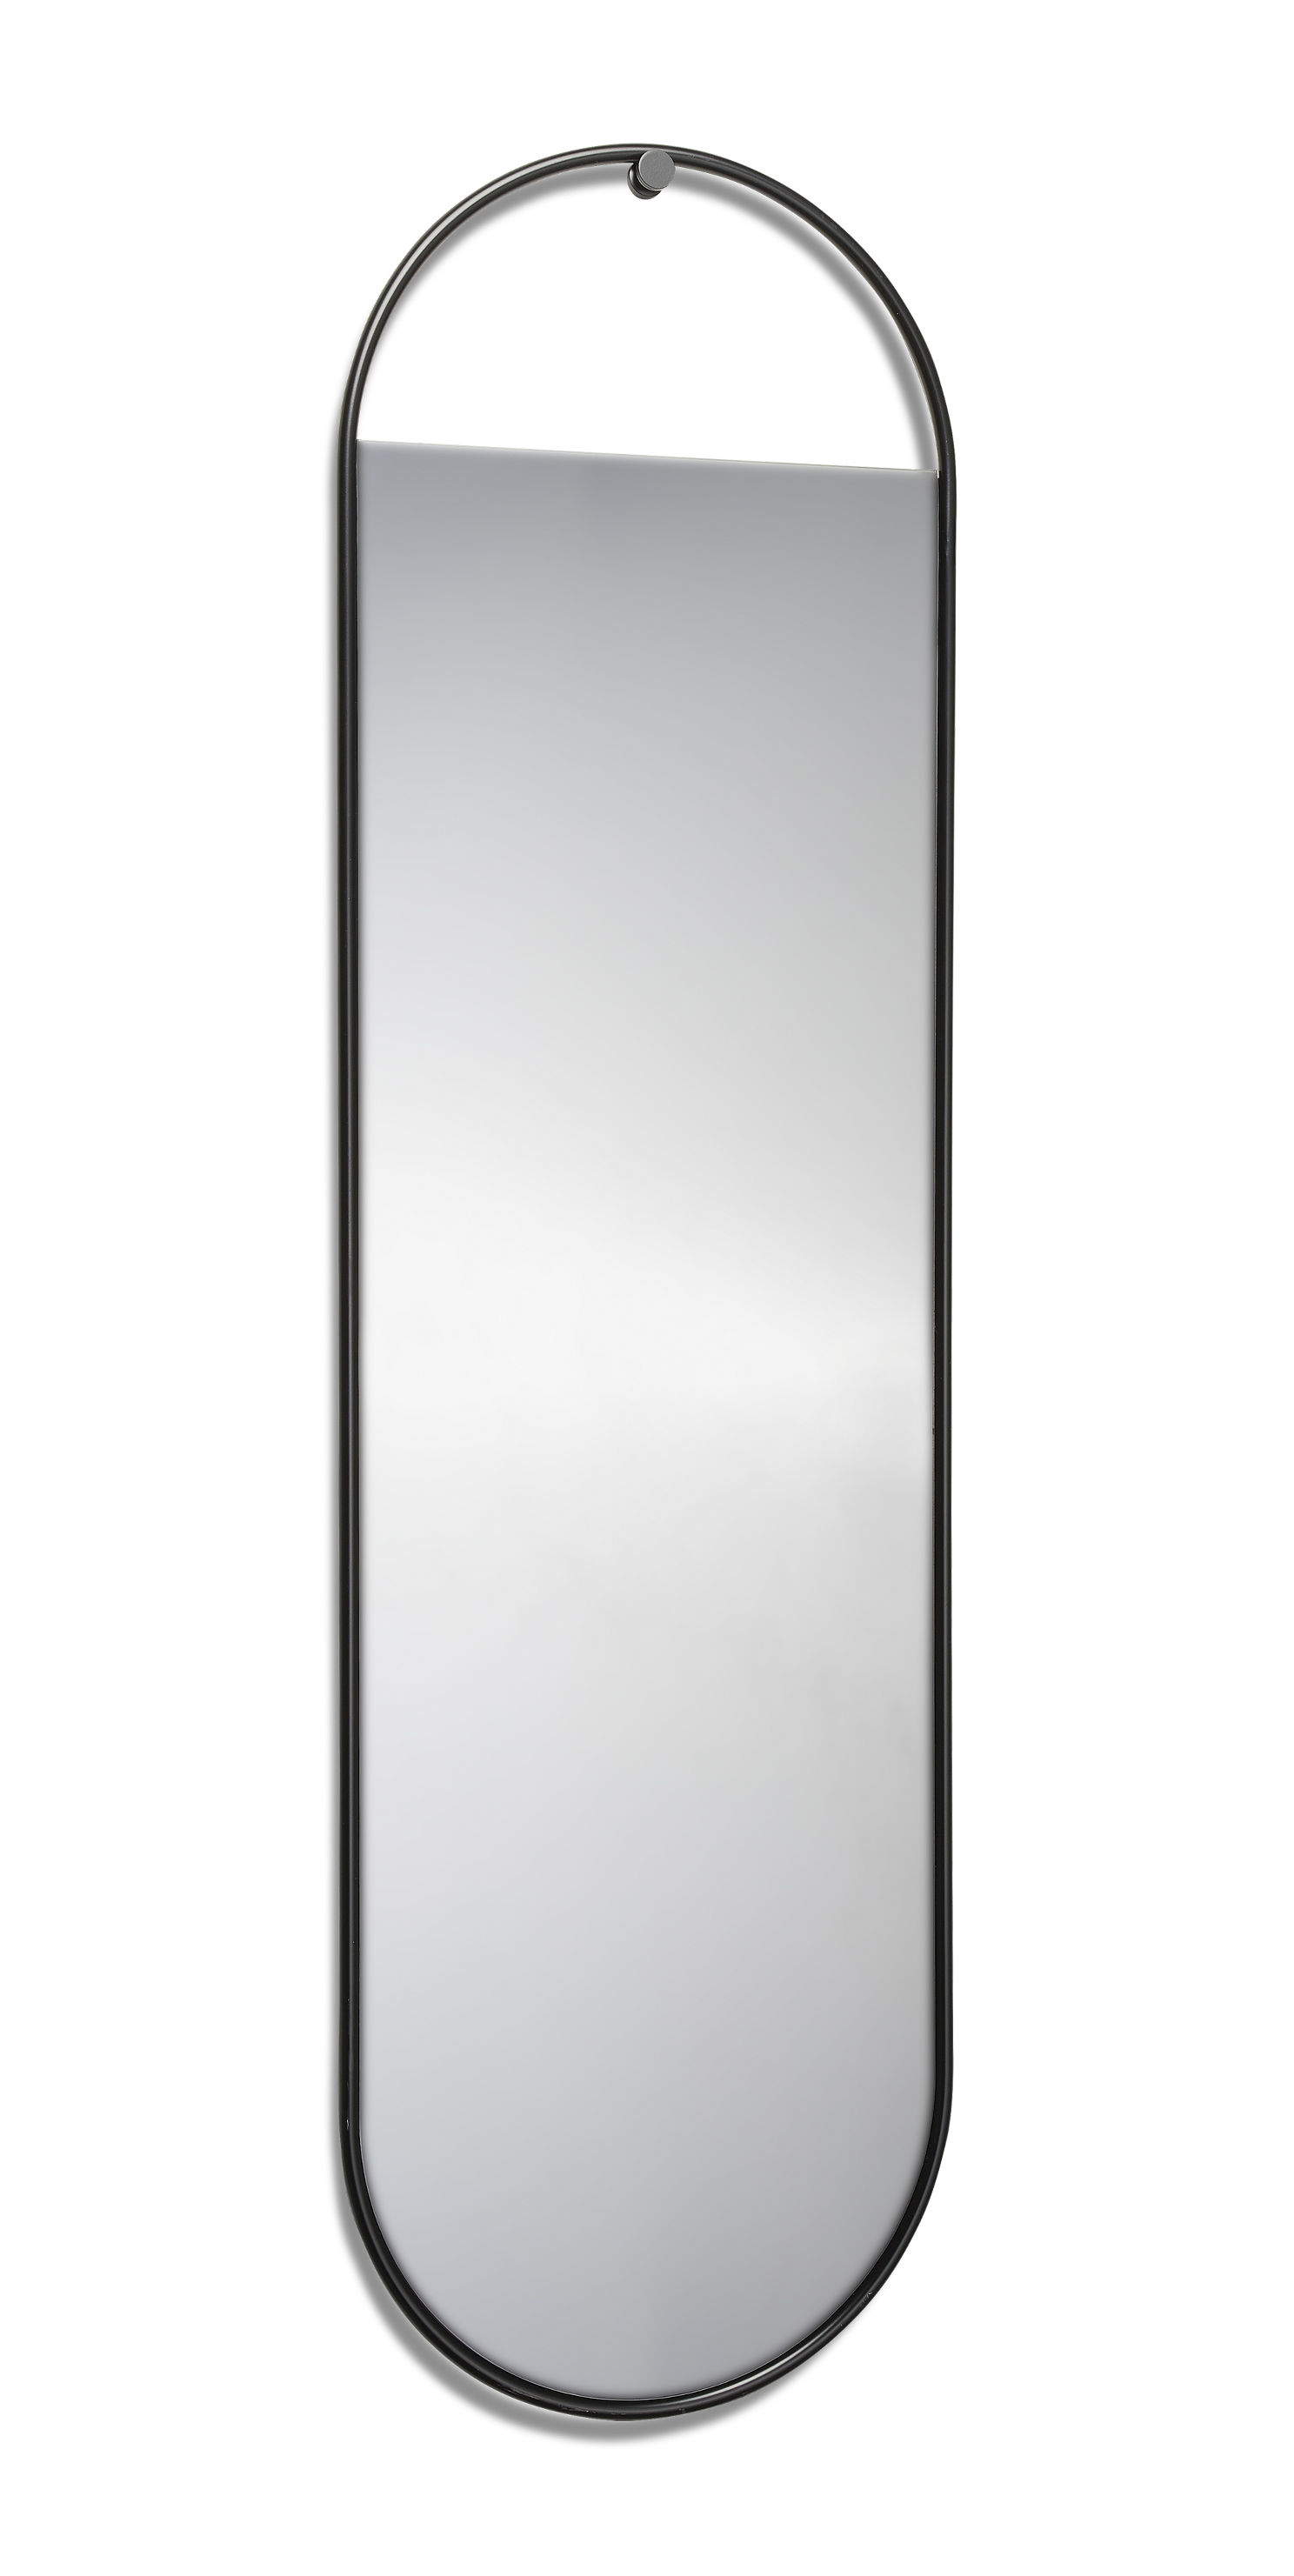 Decoration - Mirrors - Peek Large Wall mirror - / Oval - 40 x 140 cm by Northern  - H 140 cm / Black - Lacquered steel, Tinted glass